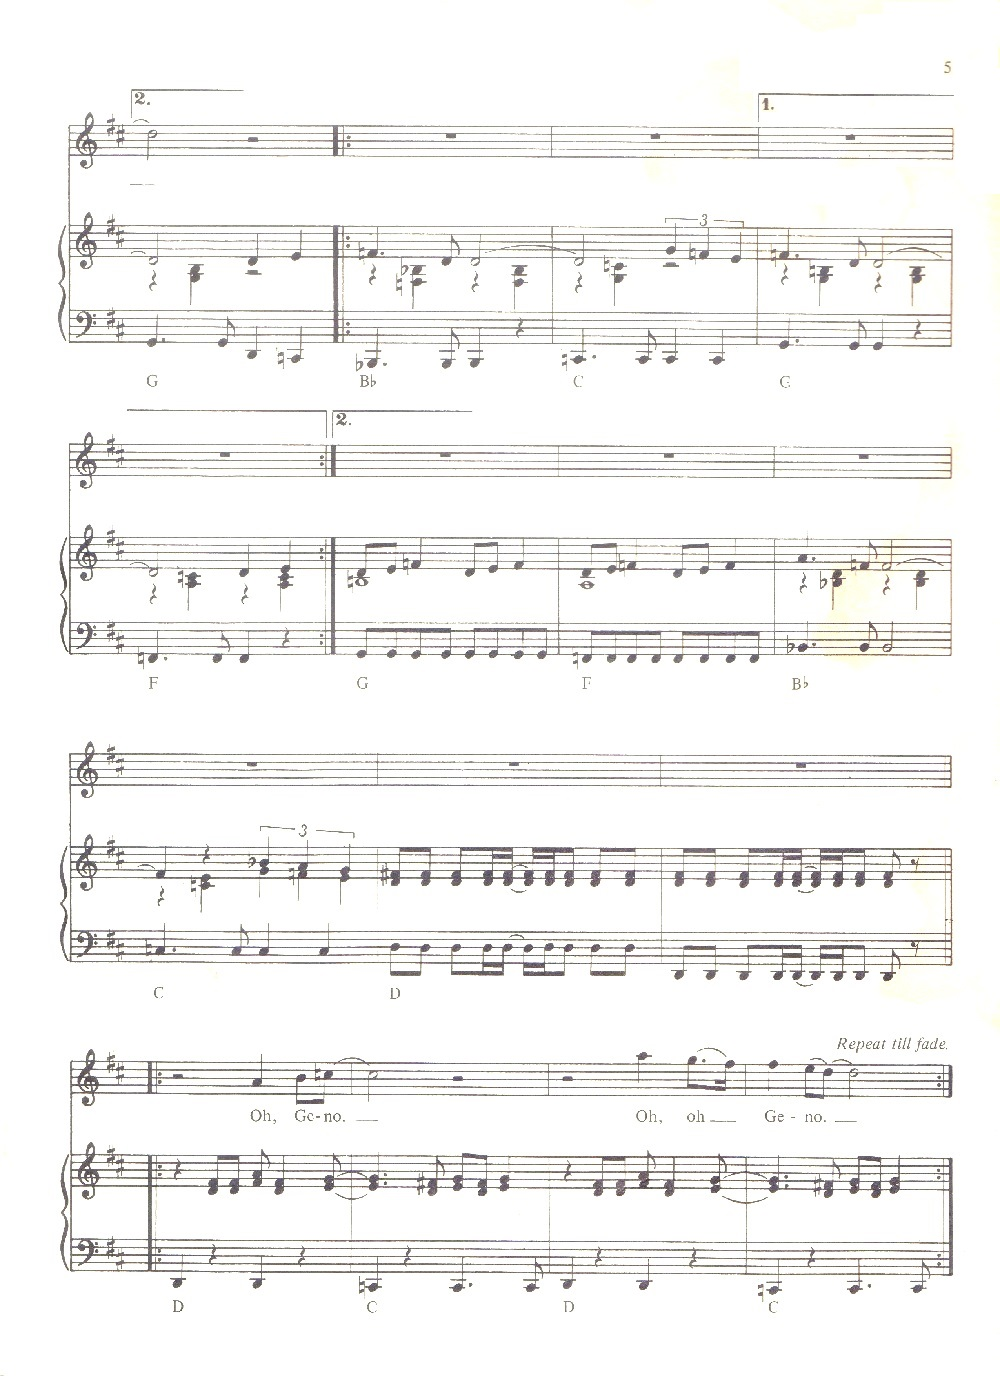 Geno_Sheet_Music_5.jpg